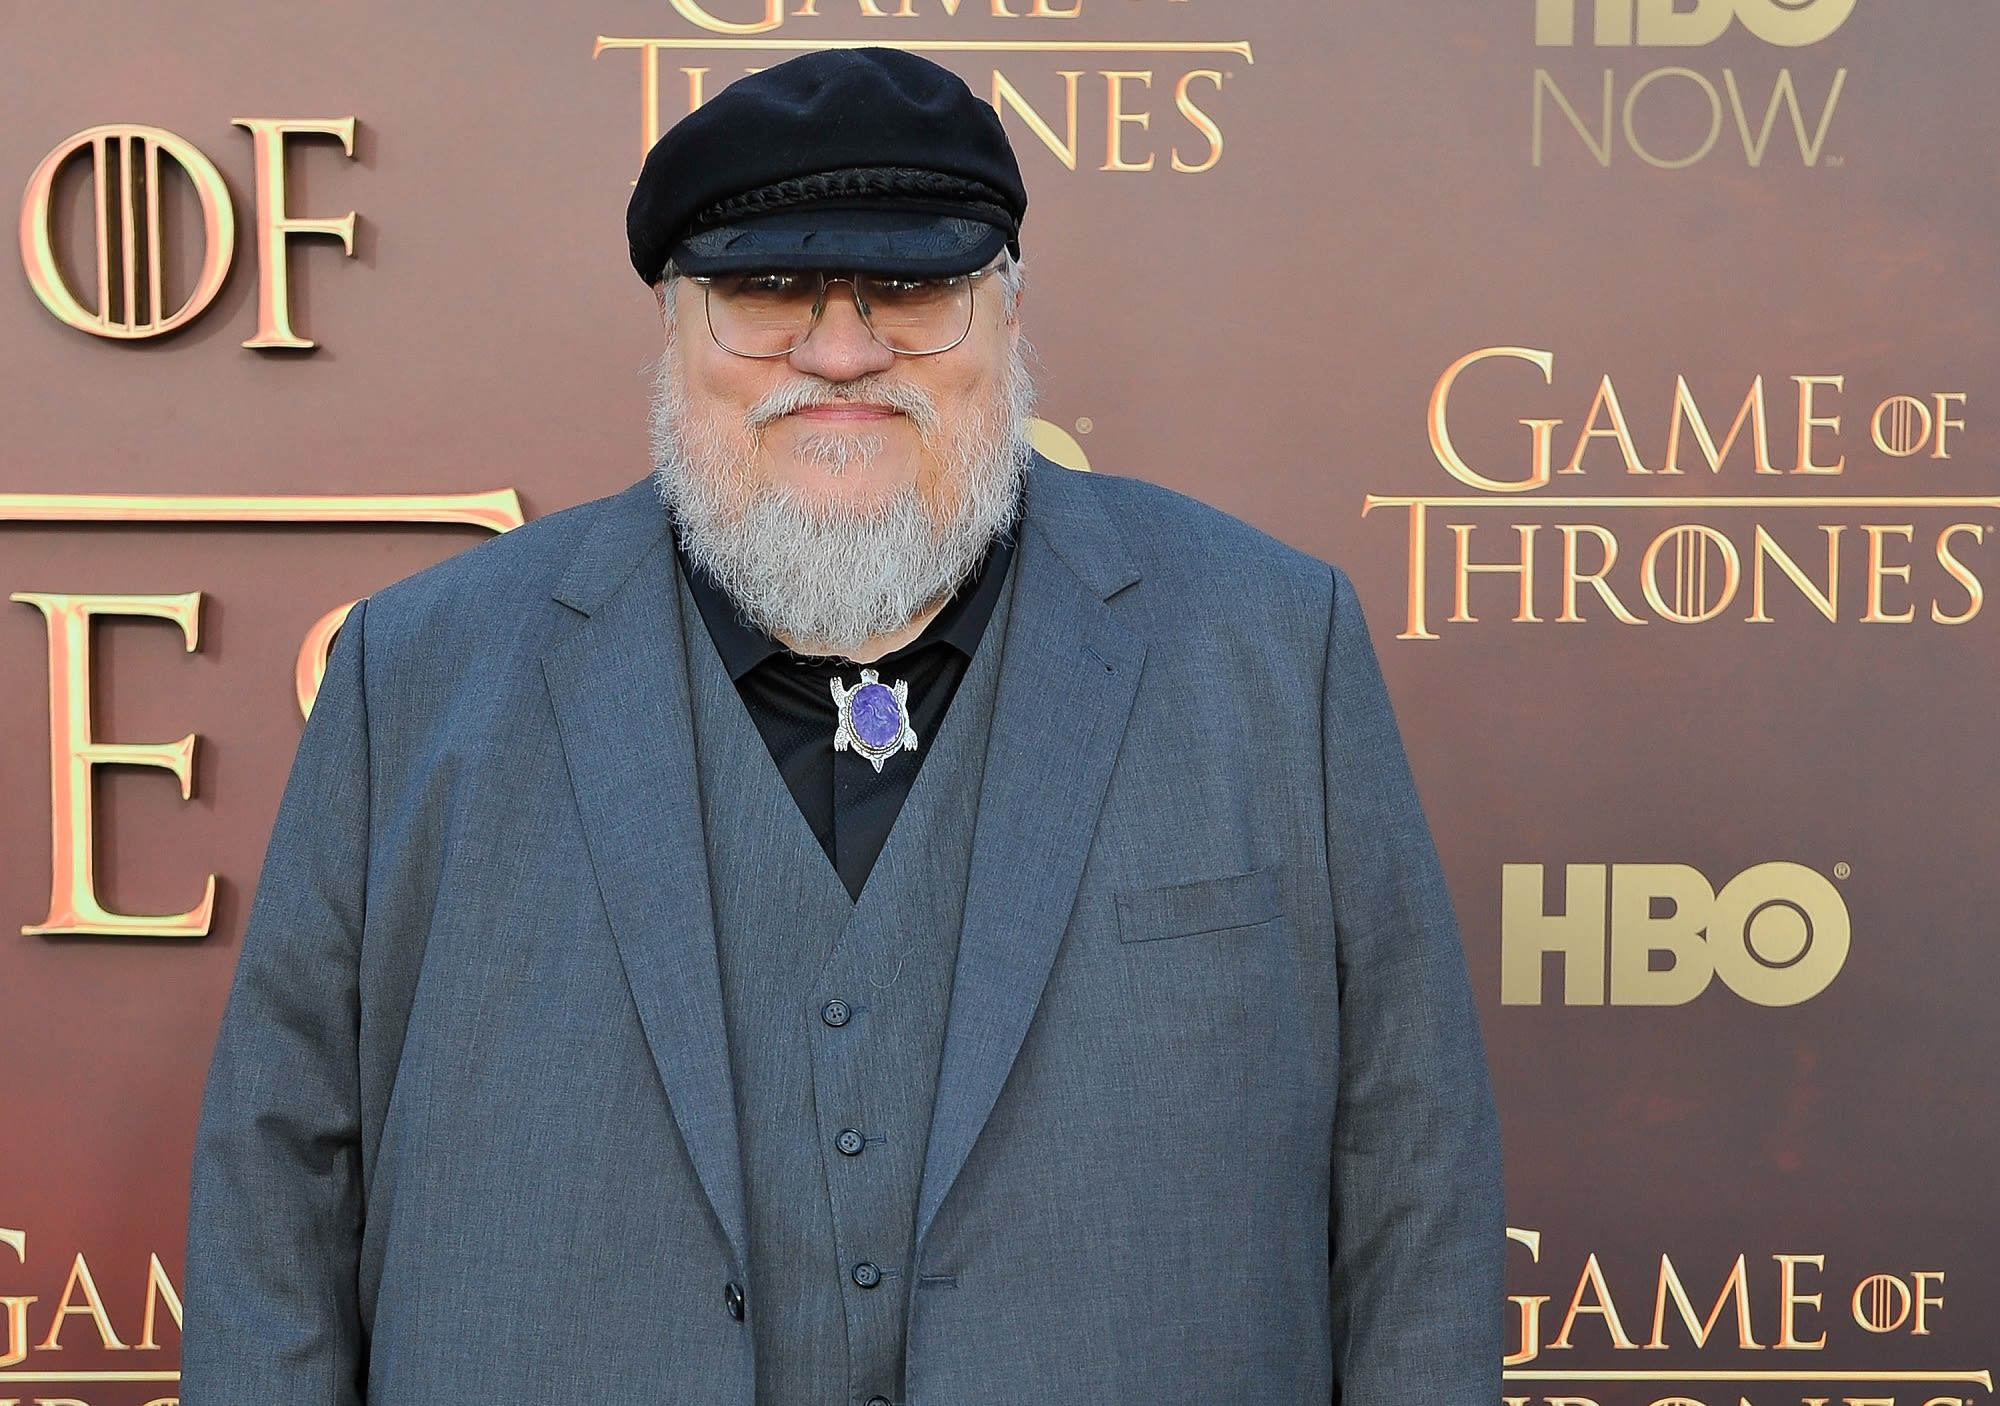 George R. R. Martin defends Game of Thrones show runners in blog post